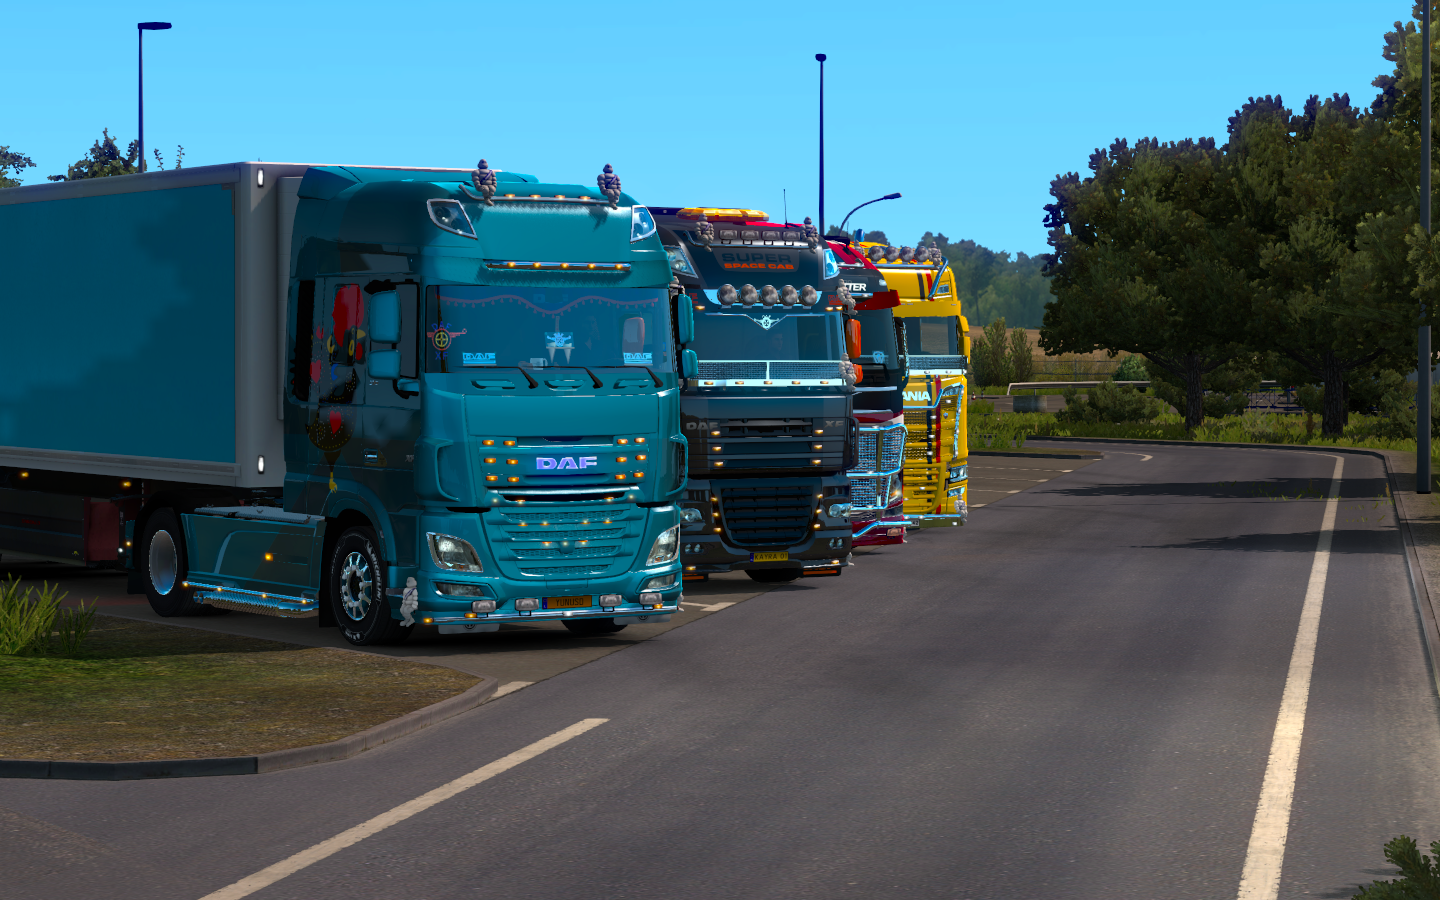 ets2_20190421_154812_00.png